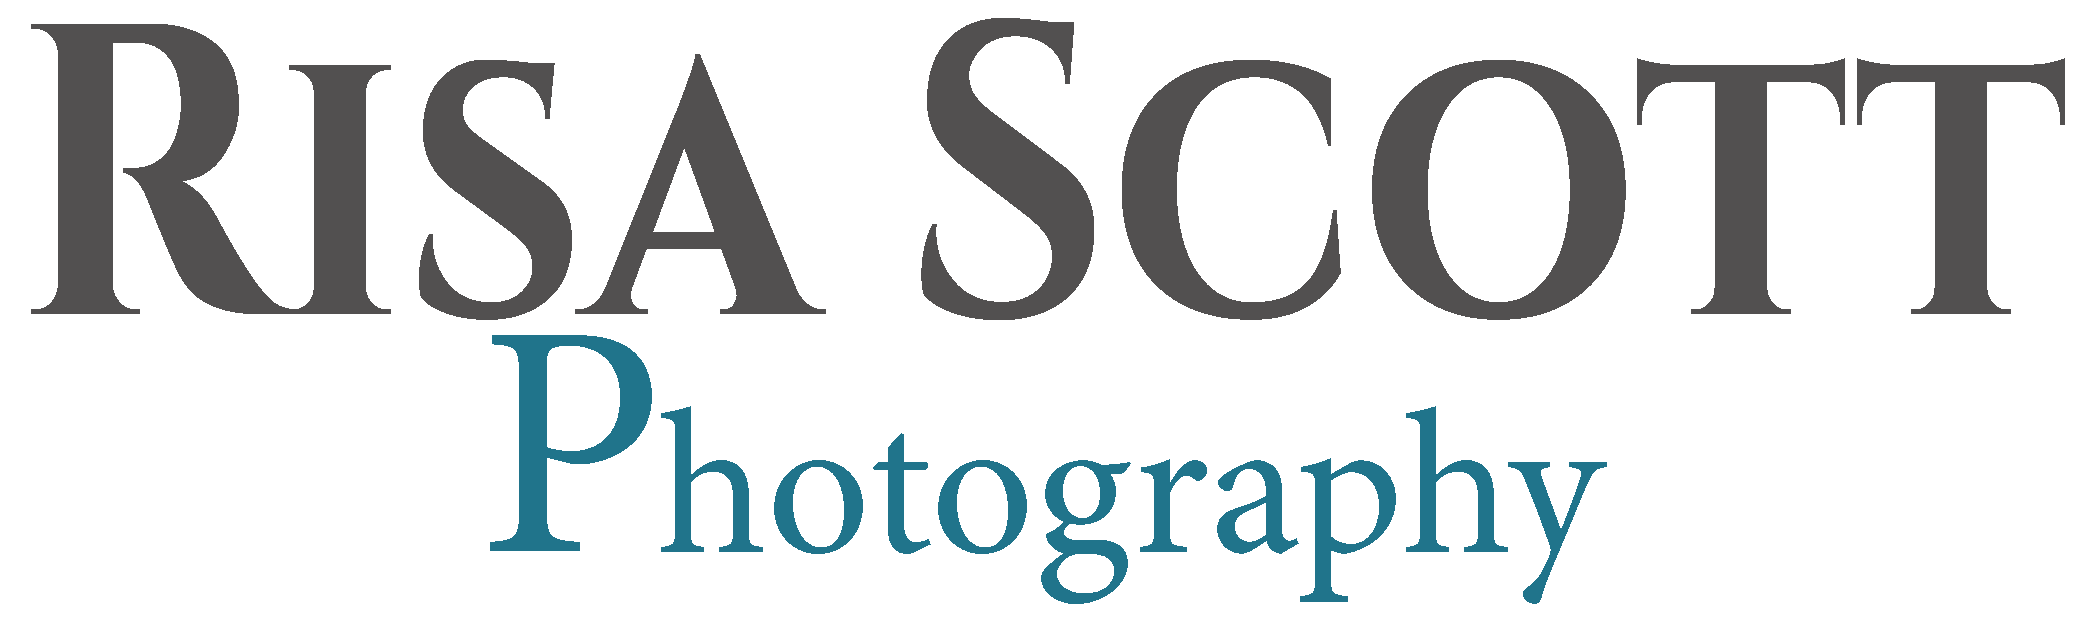 Risa Scott Photography | Creative Images and Portraiture